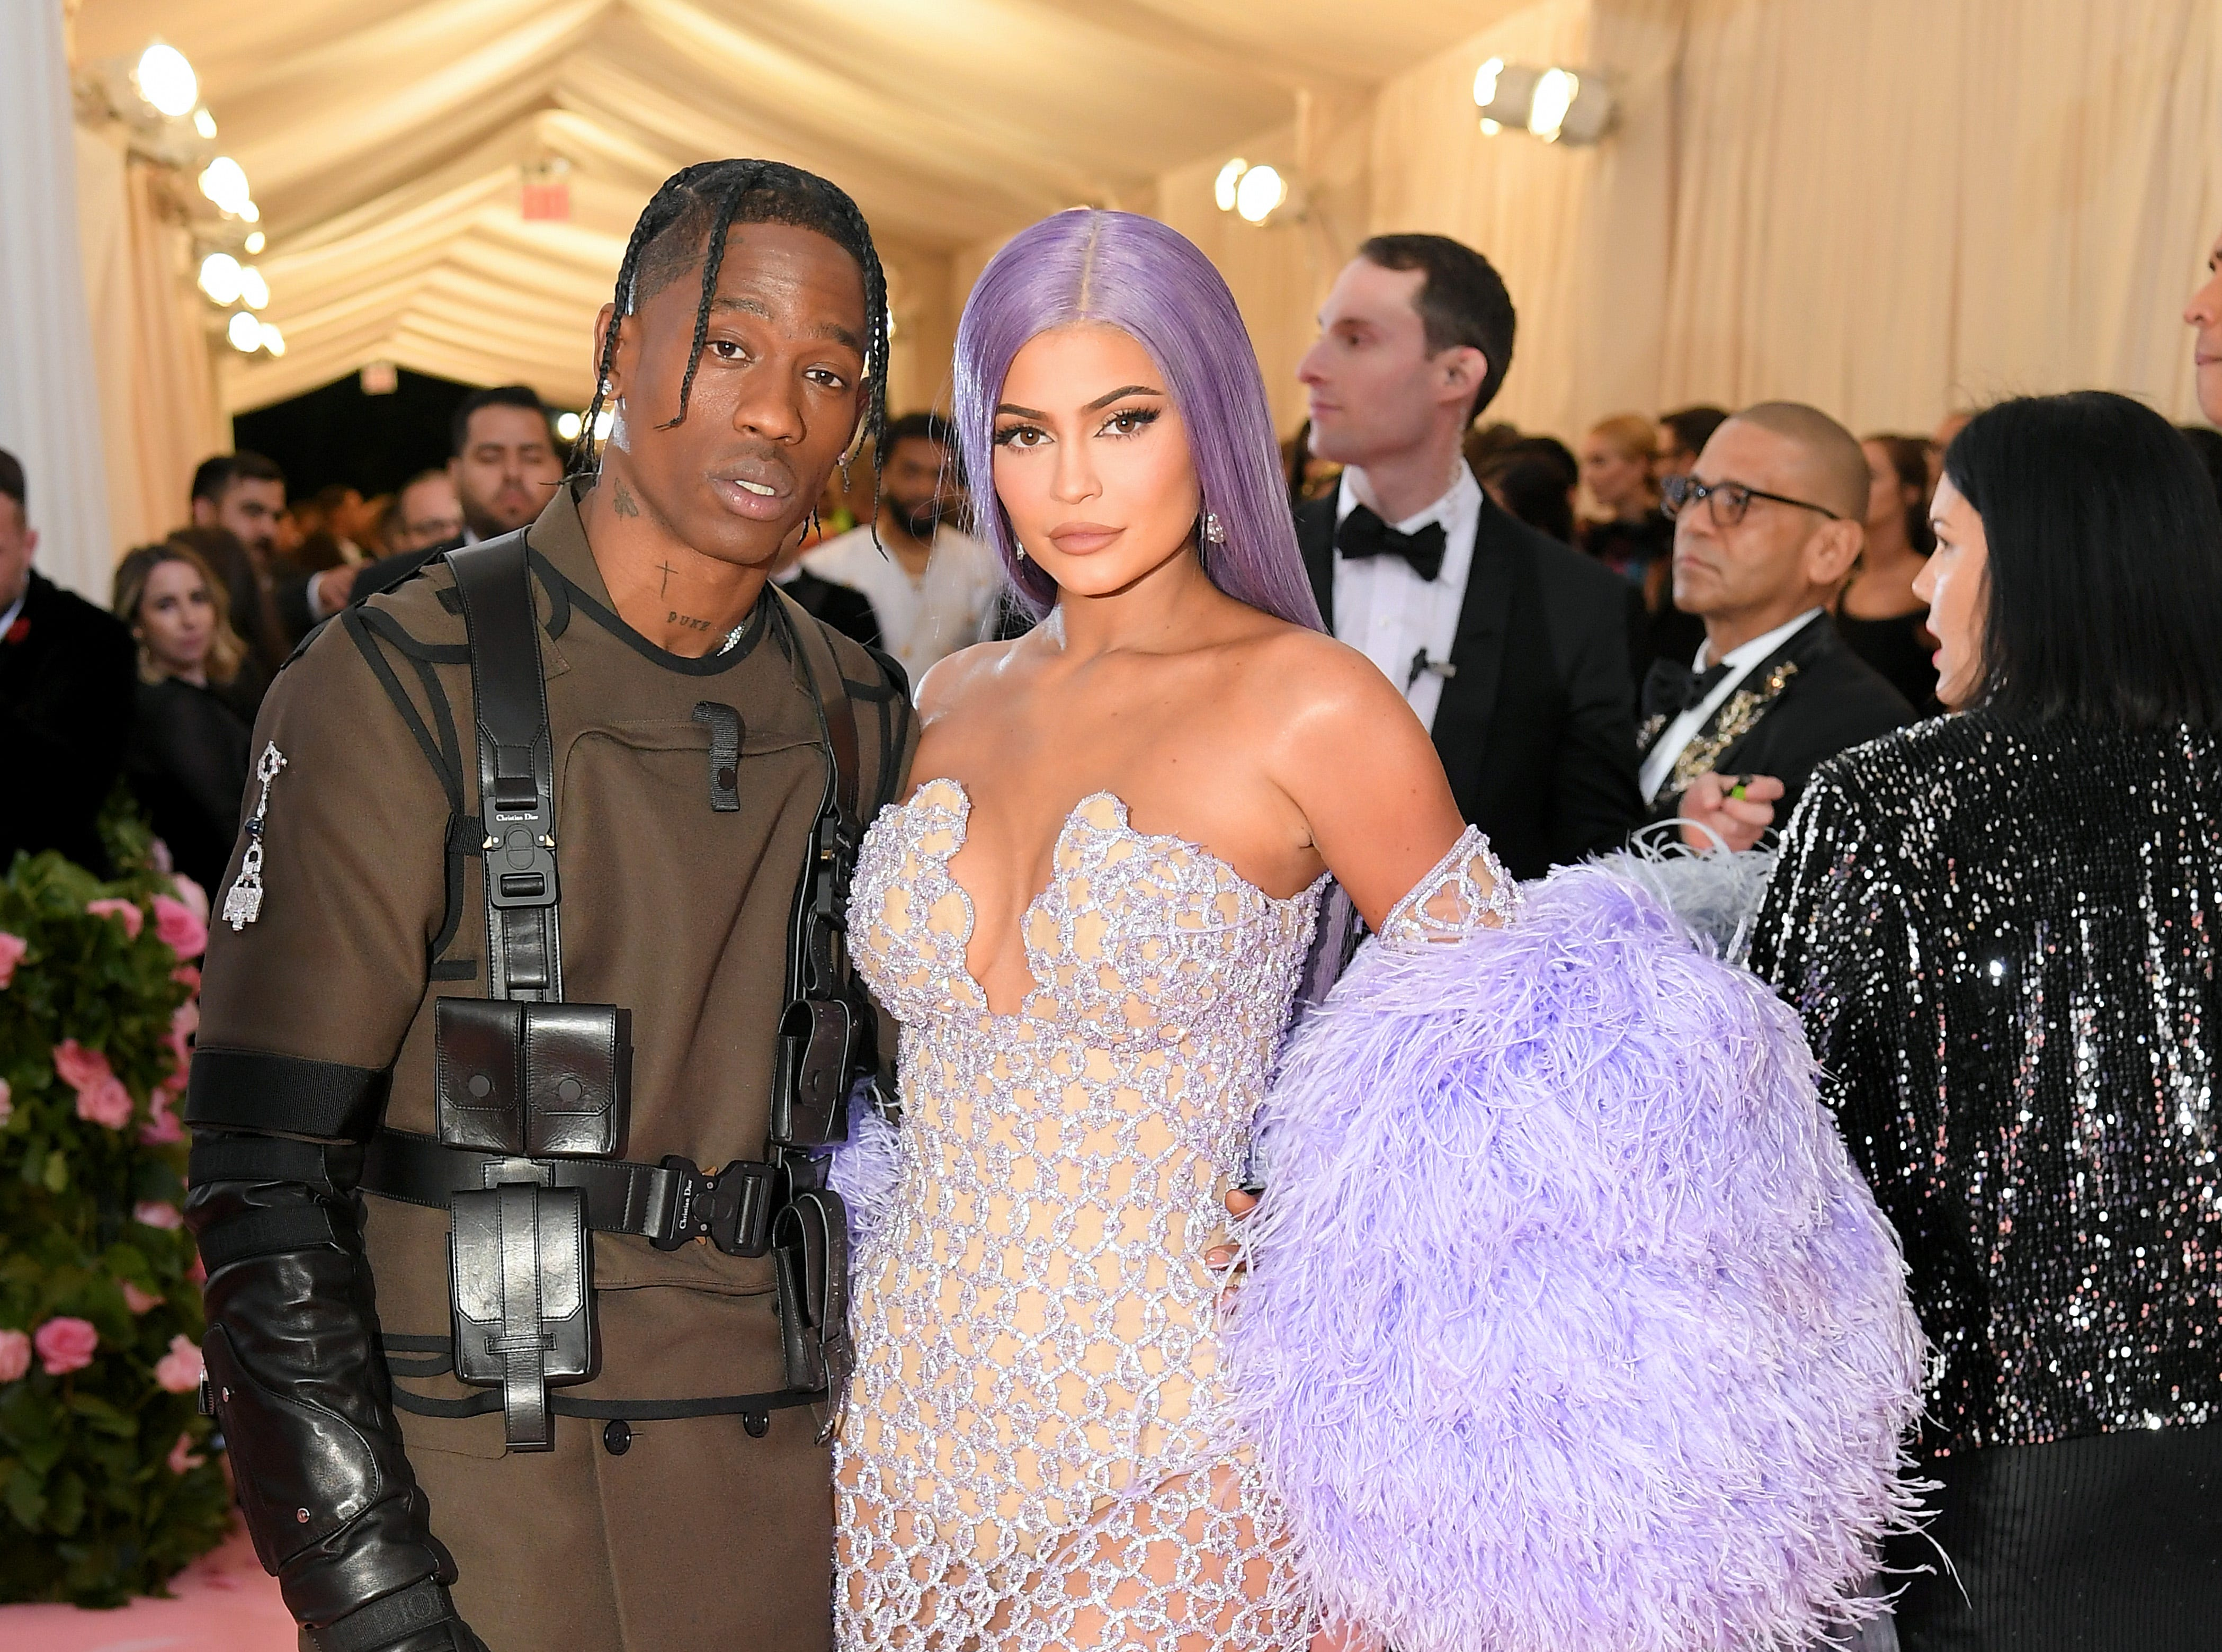 NEW YORK, NEW YORK - MAY 06: Travis Scott and Kylie Jenner attend The 2019 Met Gala Celebrating Camp: Notes on Fashion at Metropolitan Museum of Art on May 06, 2019 in New York City. (Photo by Neilson Barnard/Getty Images) ORG XMIT: 775333959 ORIG FILE ID: 1147429546